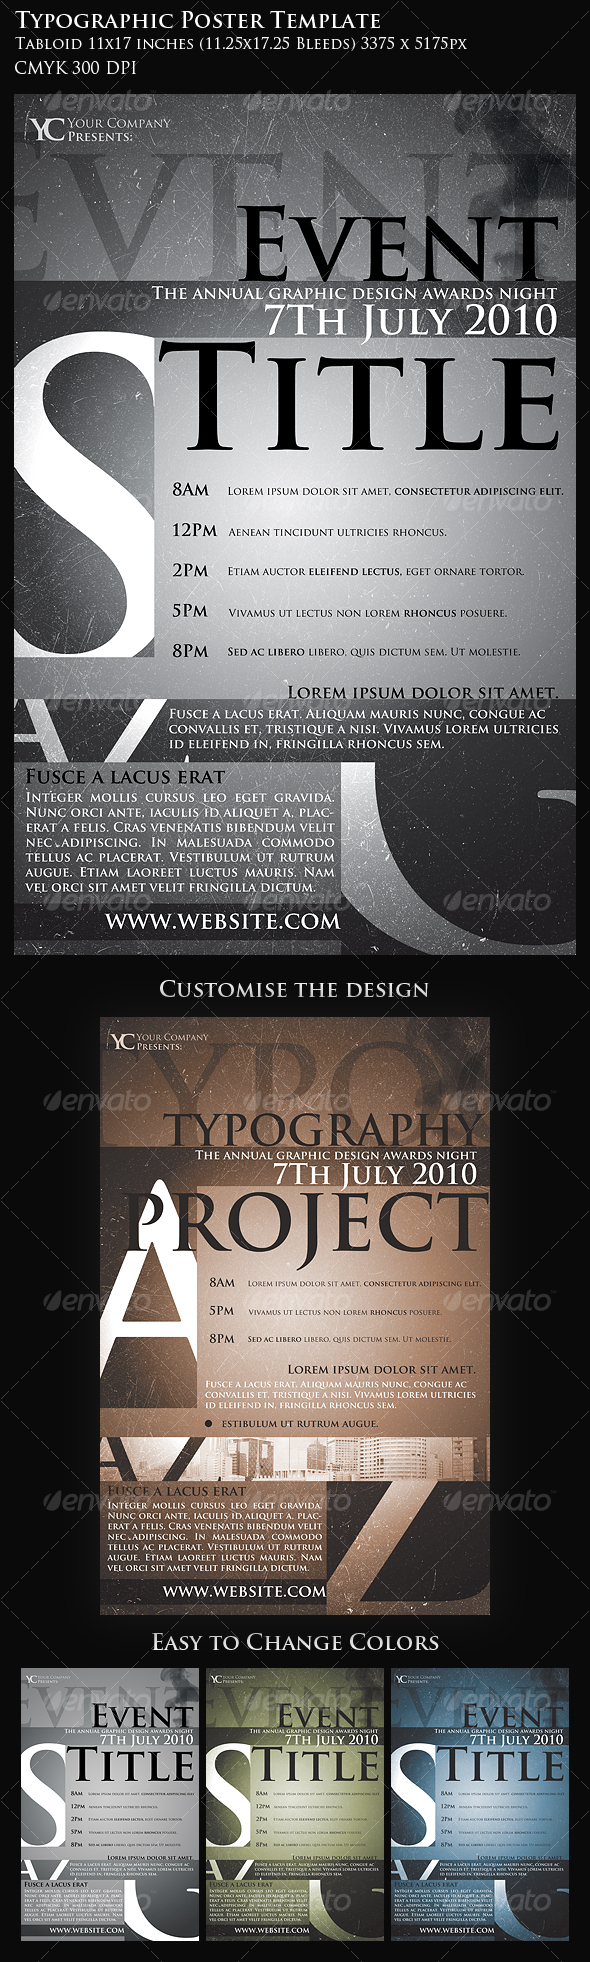 GraphicRiver Typographic Poster Template 109916